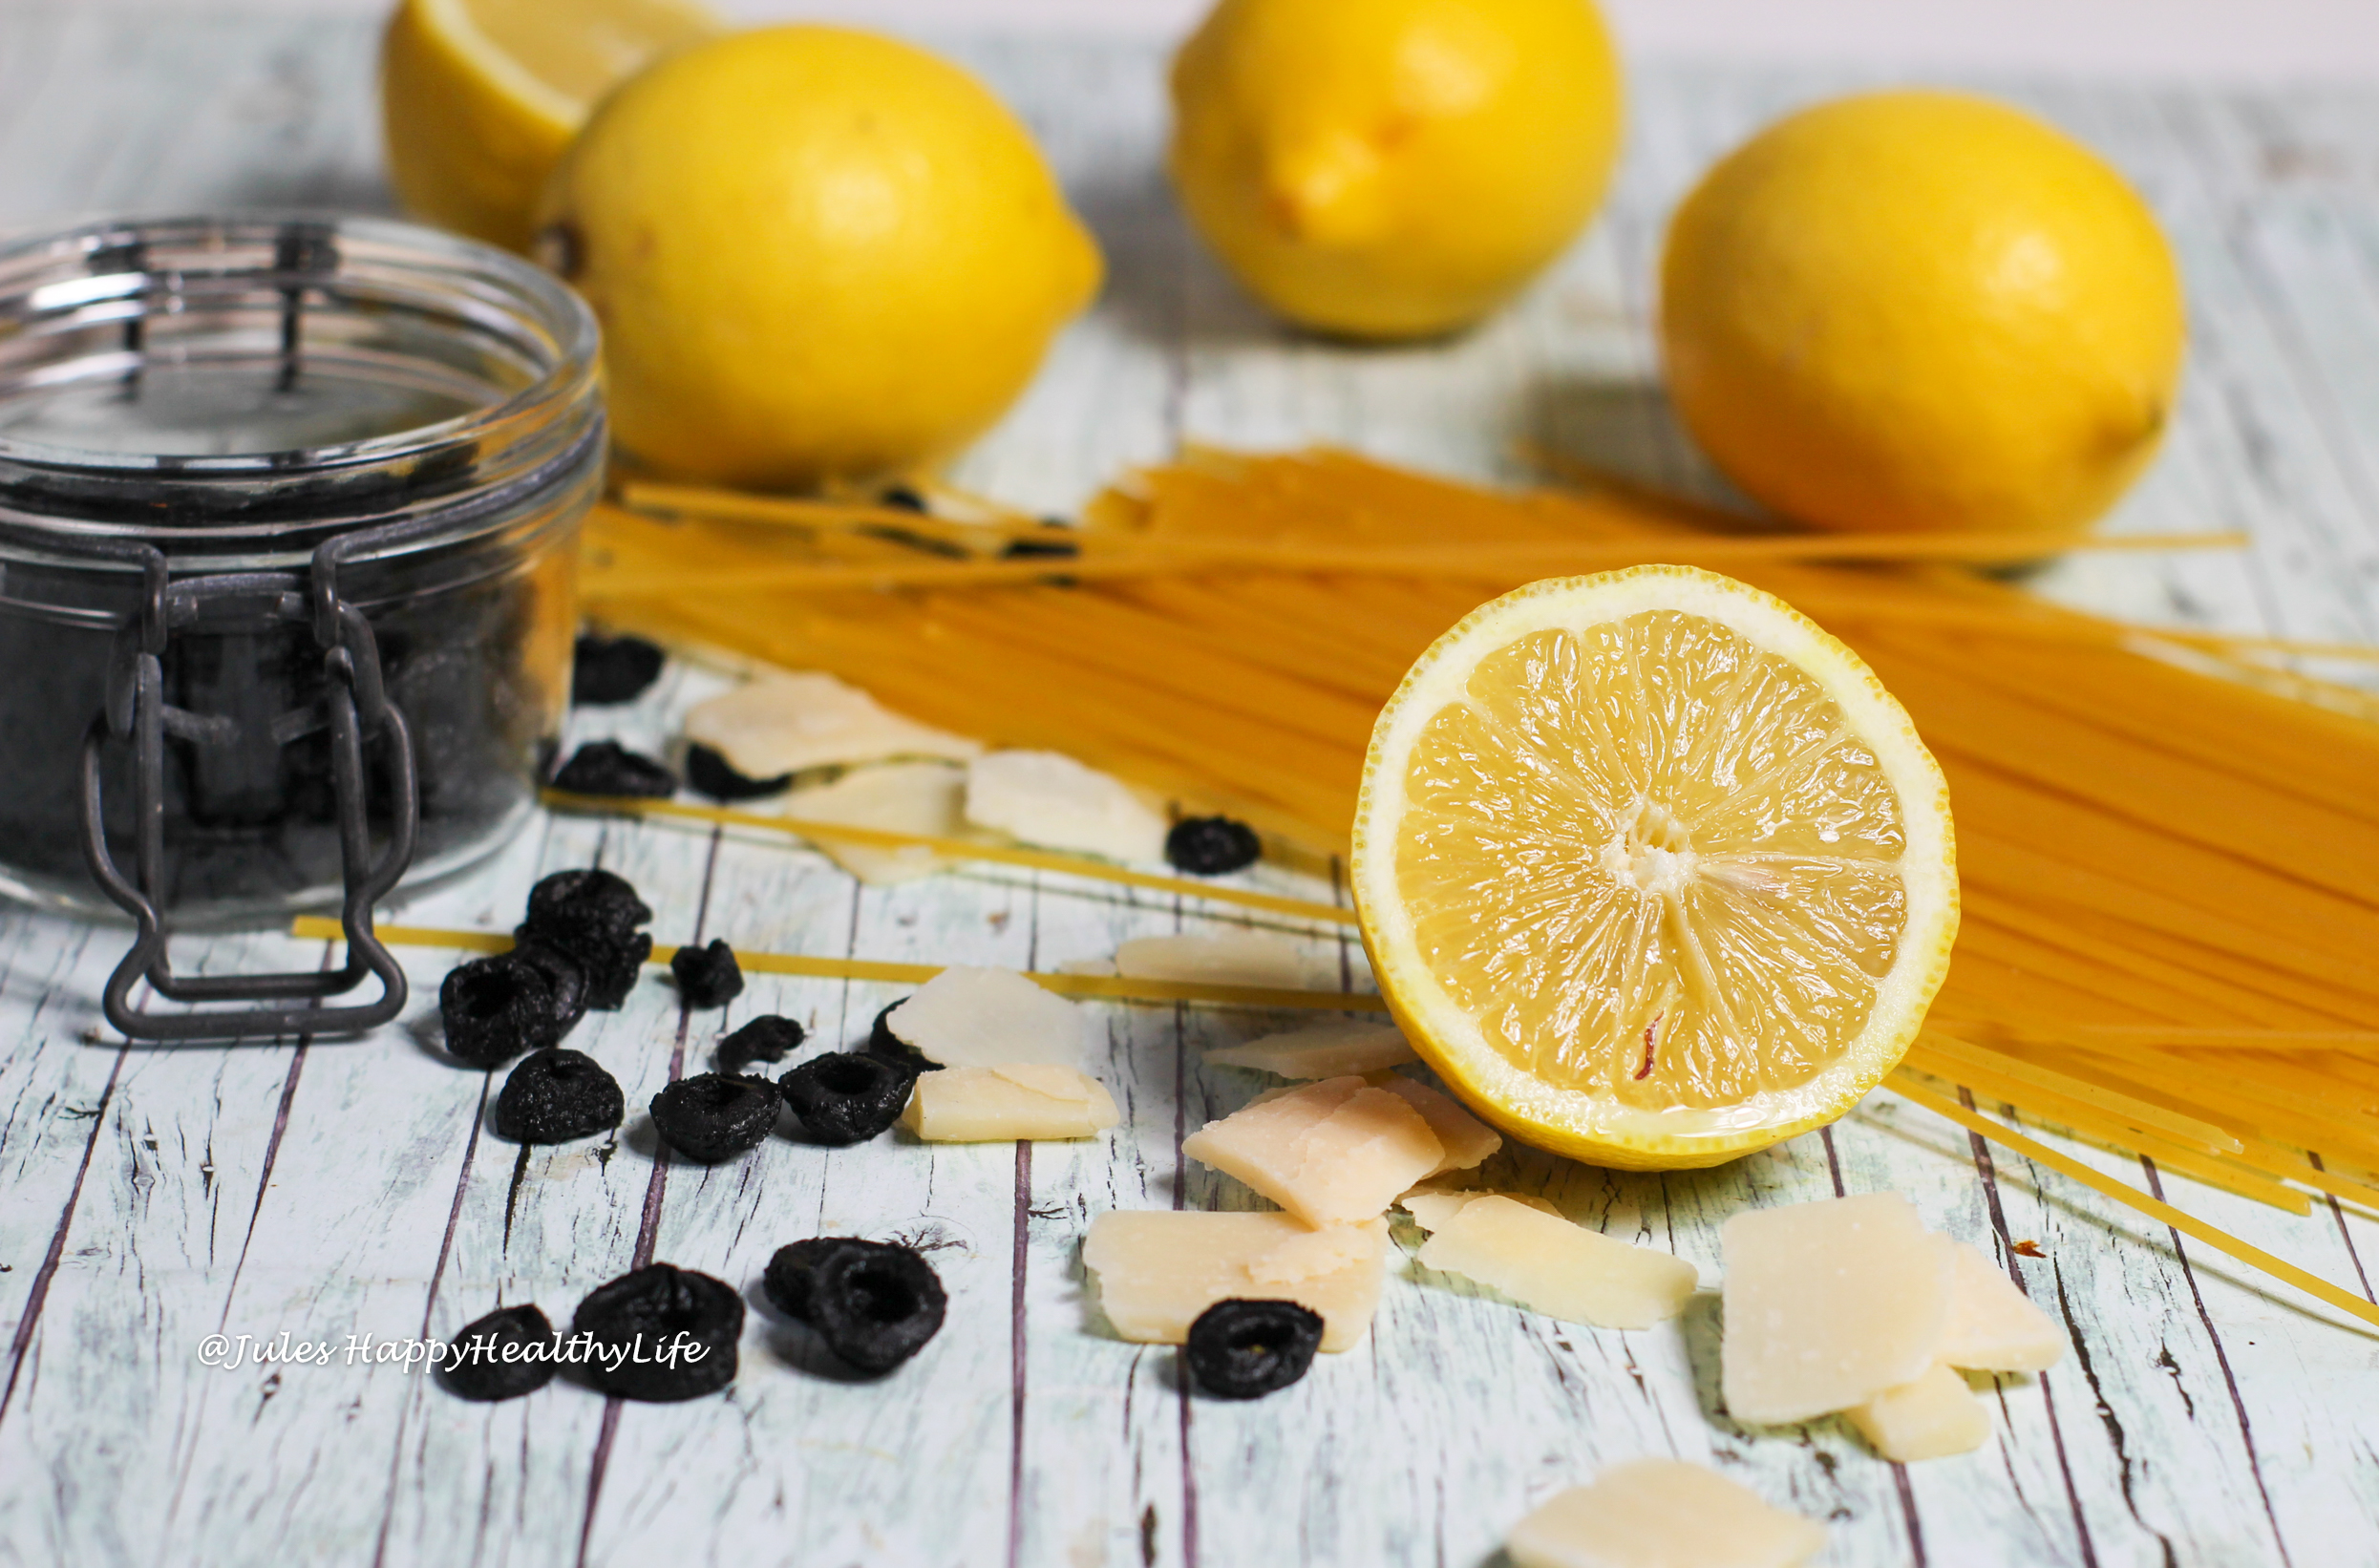 Ingredients for gluten-free Spaghetti with Lemon Sauce